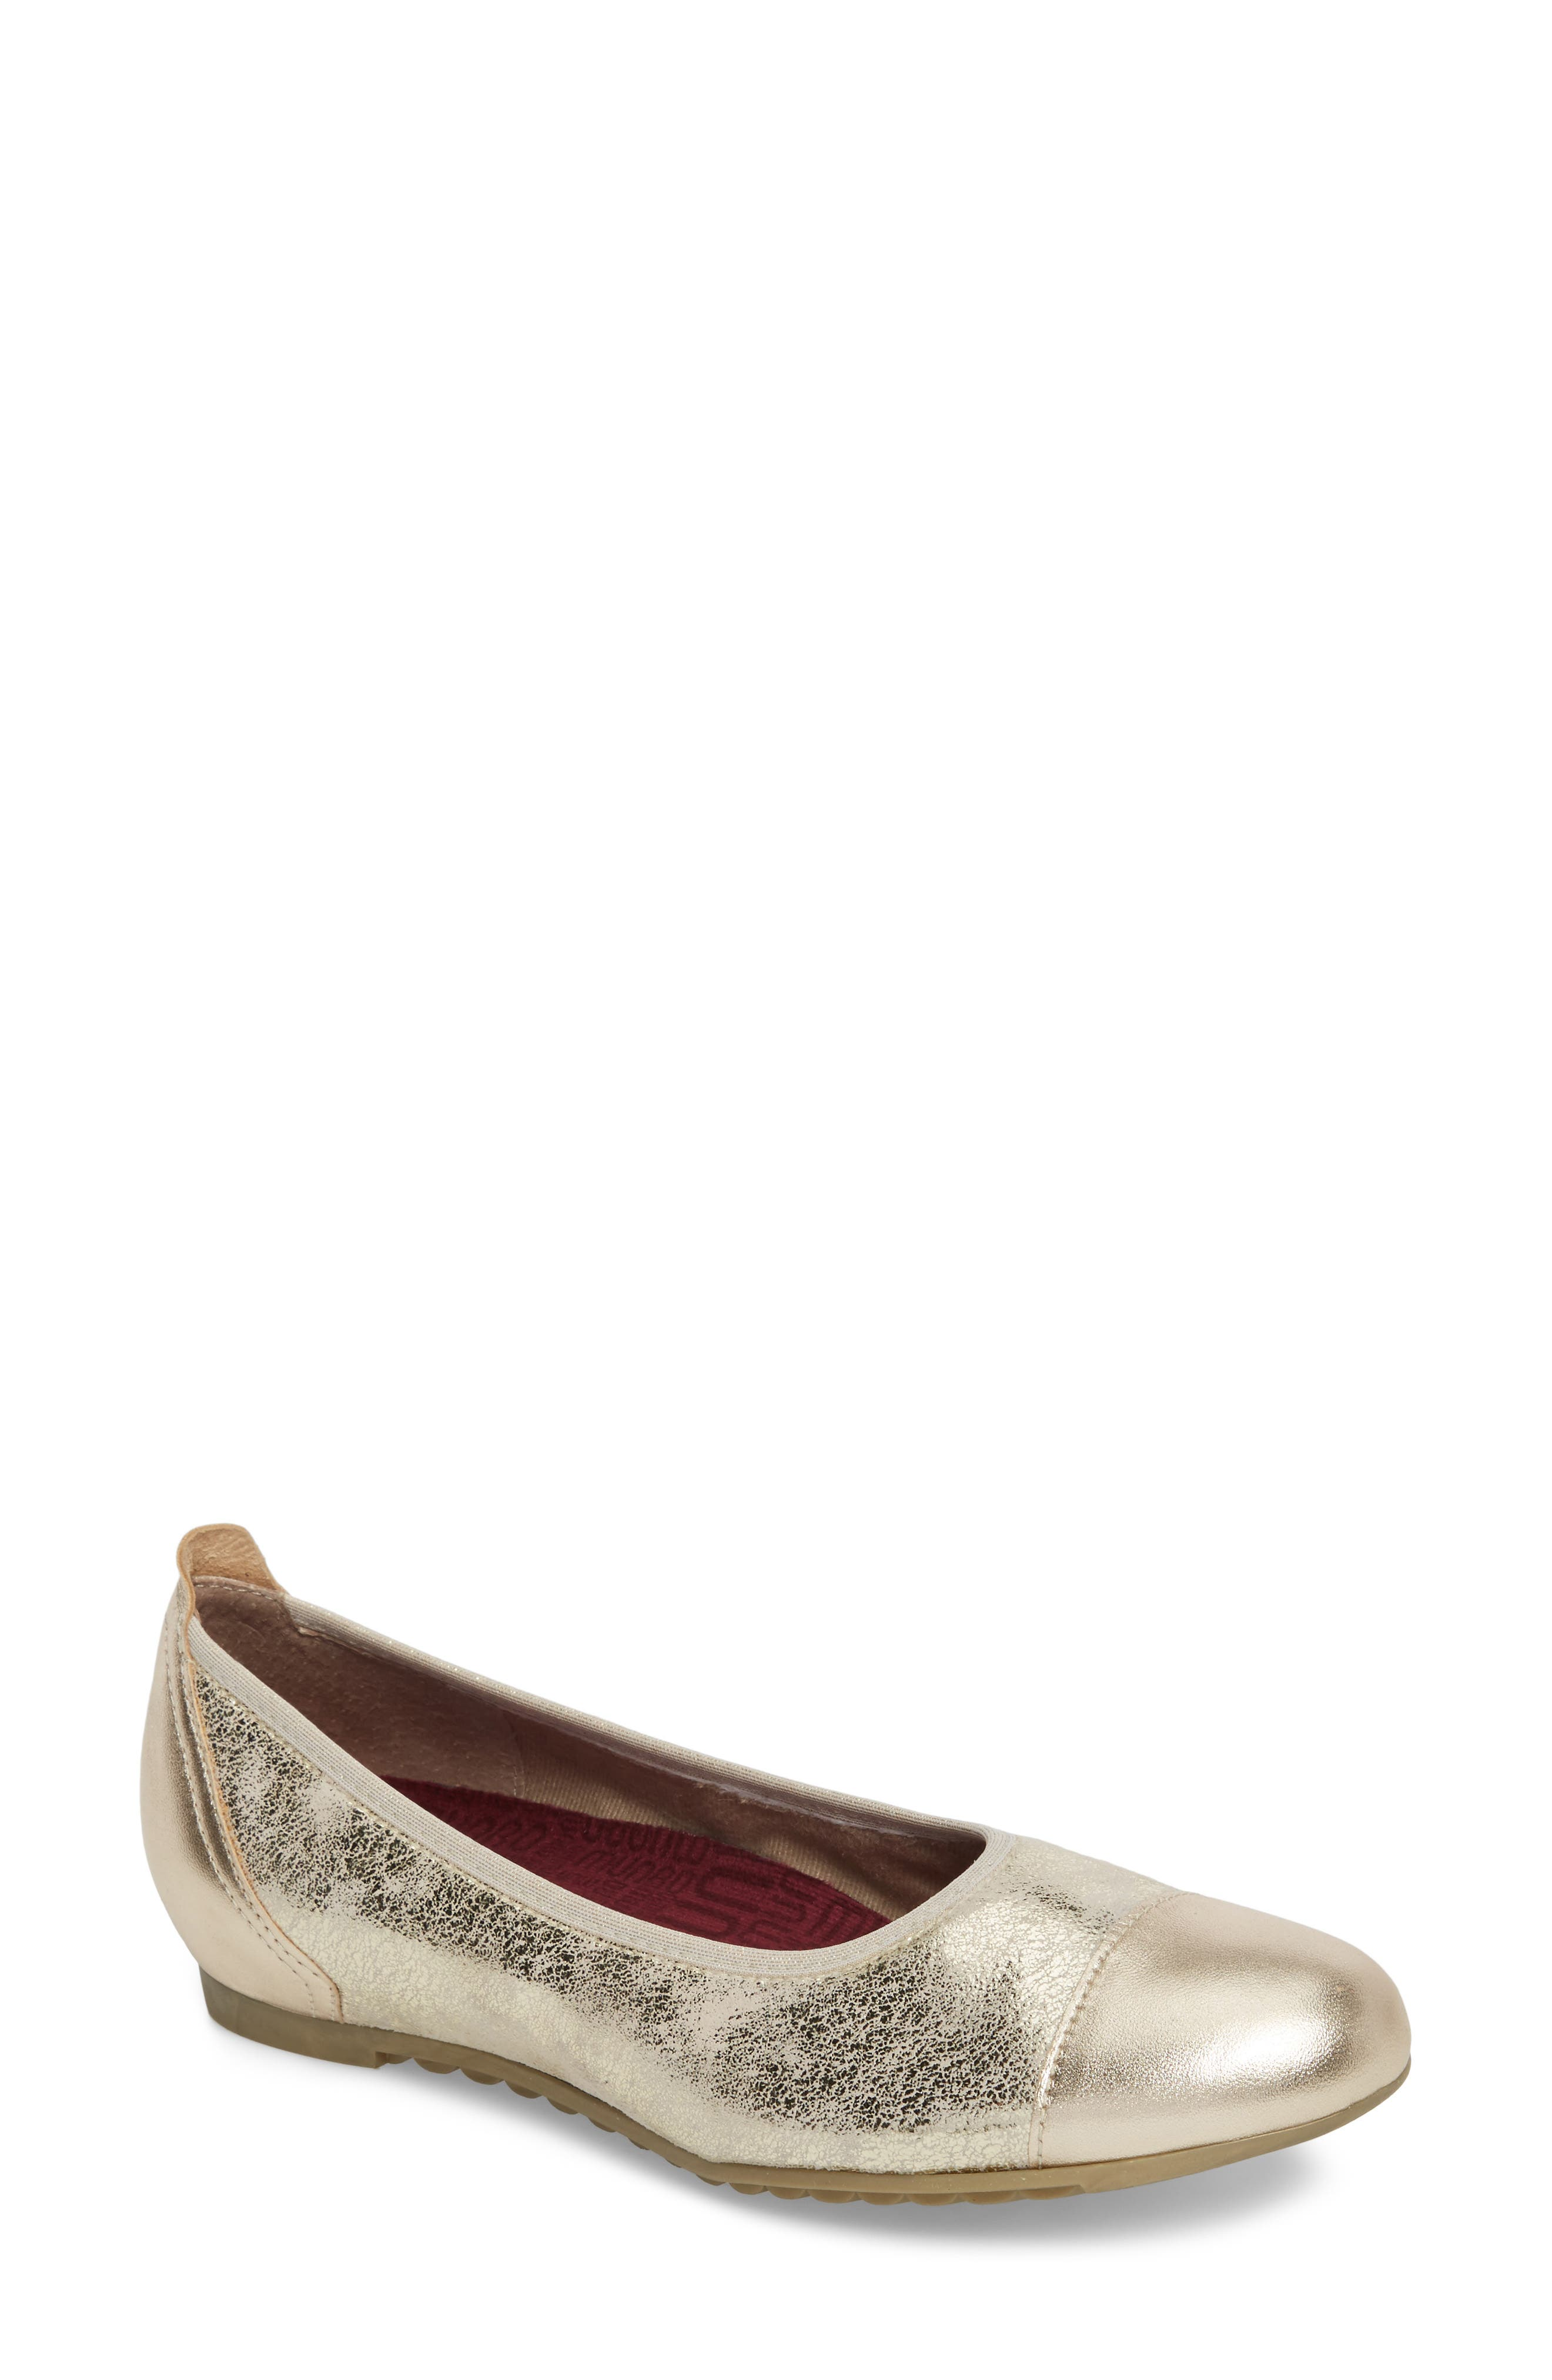 MUNRO Henlee Cap Toe Flat, Main, color, PLATINUM SHIMMER LEATHER